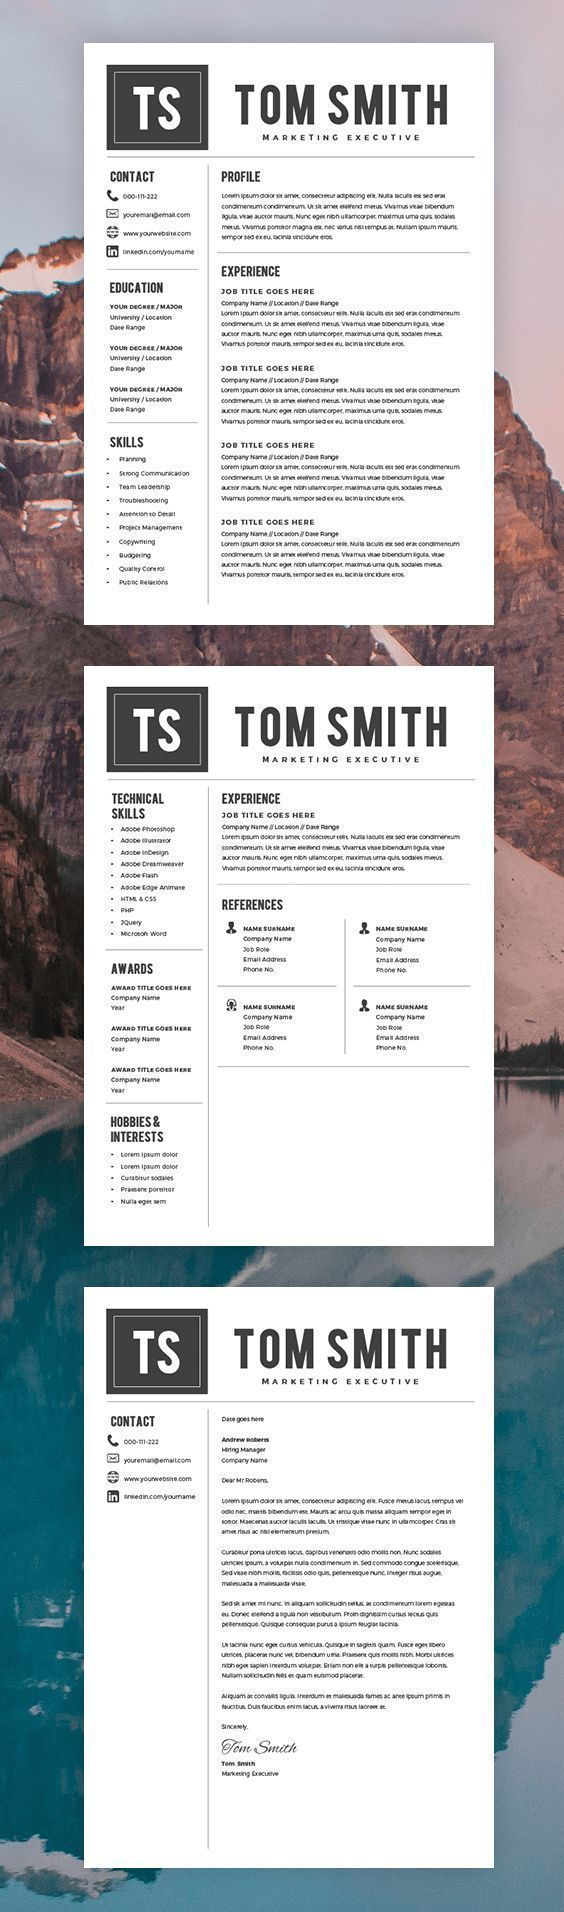 Chronological Resume Samples%0A Modern Resume Template  Free Cover Letter  CV Template  MS Word on Mac